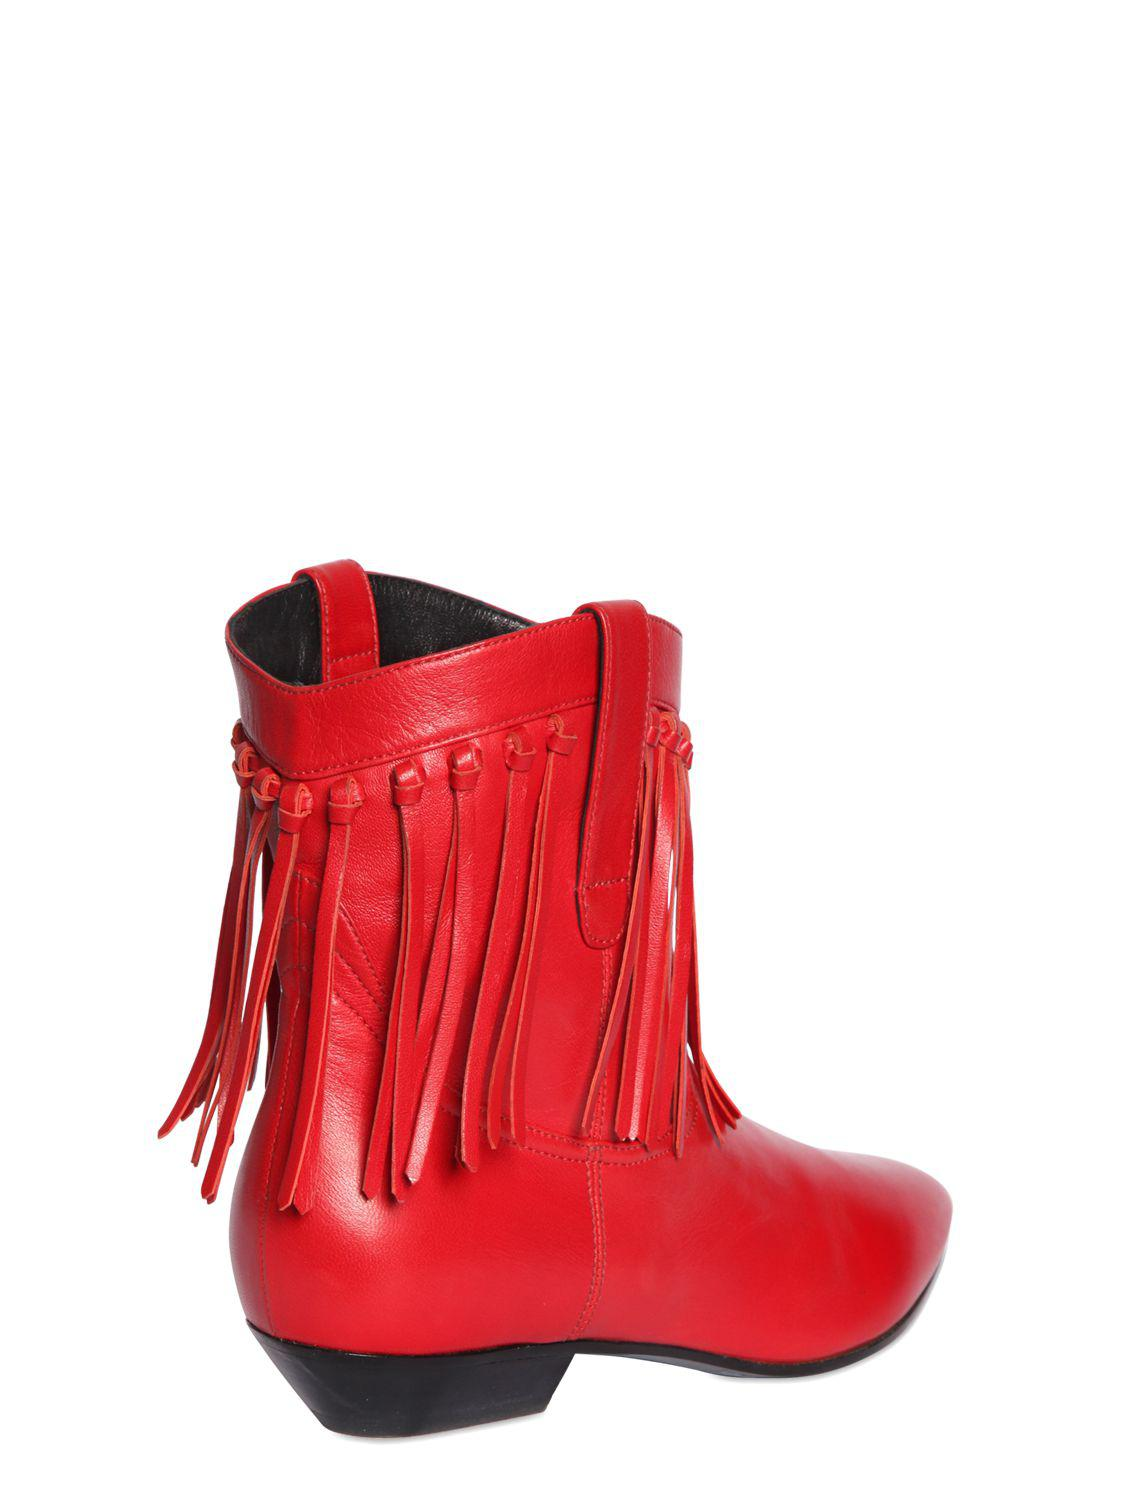 Saint Laurent 25mm Titi Fringed Leather Boots In Red Lyst